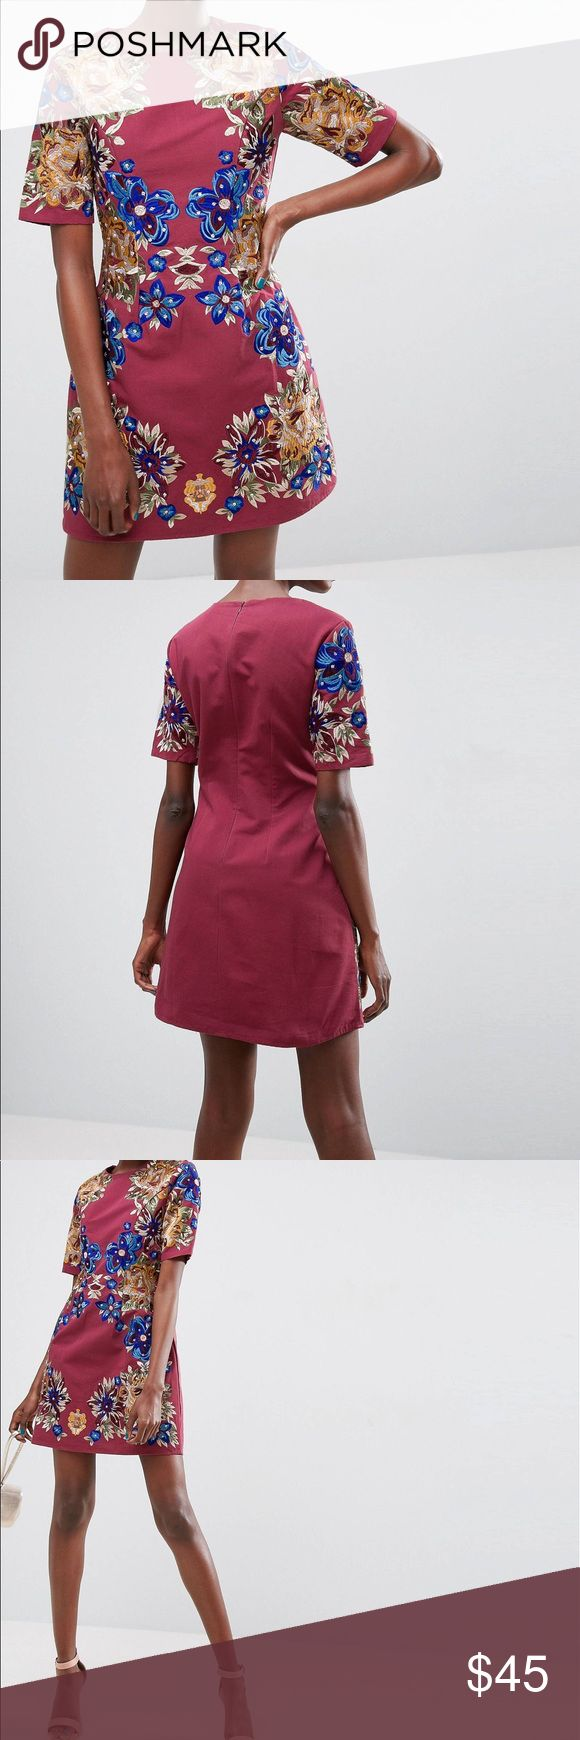 ASOS Premium Embroidered Shift Mini Dress Oxblood, embroidered mini dress! The colors and quality are amazing. I am a 34 DD/E and it doesn't look flattering on my chest. It's such a pretty dress and I'm past my return date. Never worn!!! I bought for $135. It's on sale now, so I'll sell for even less! Asos Dresses Mini